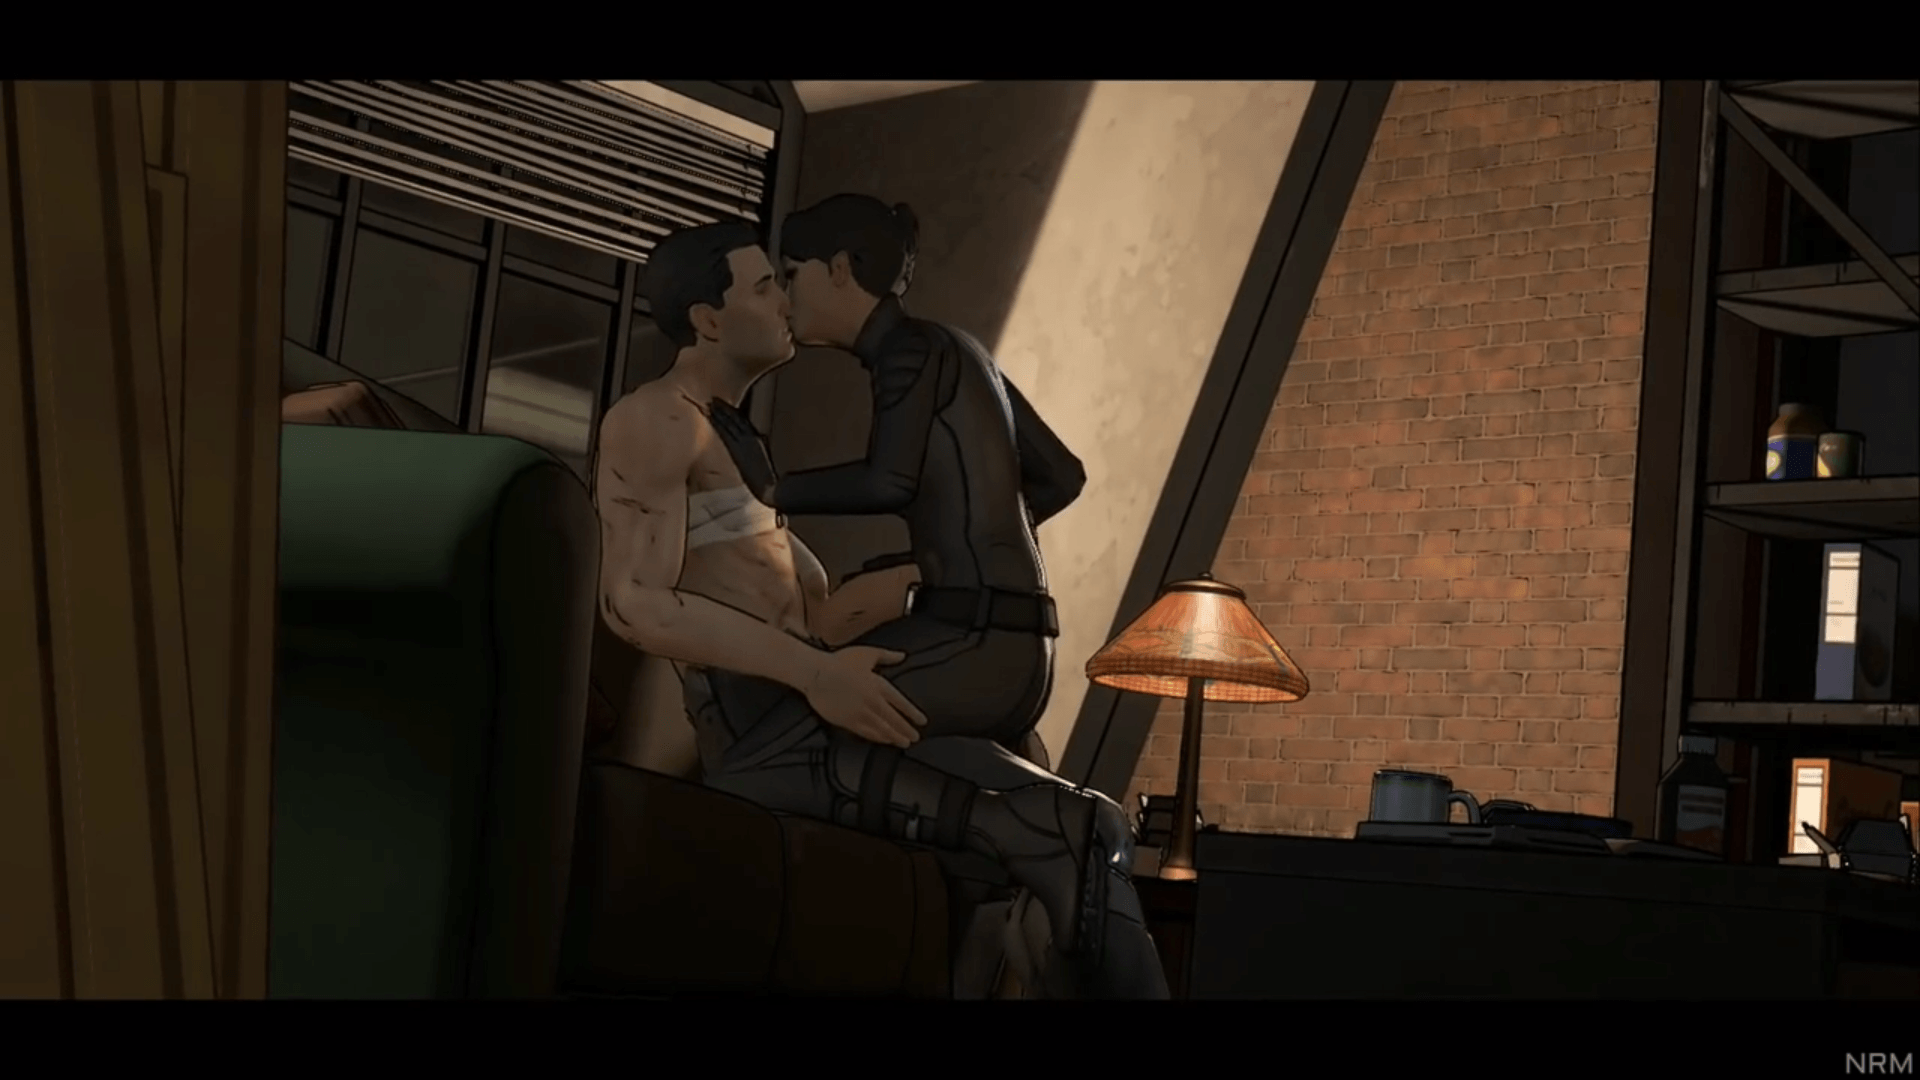 it's getting steamy between Batman and Catwoman